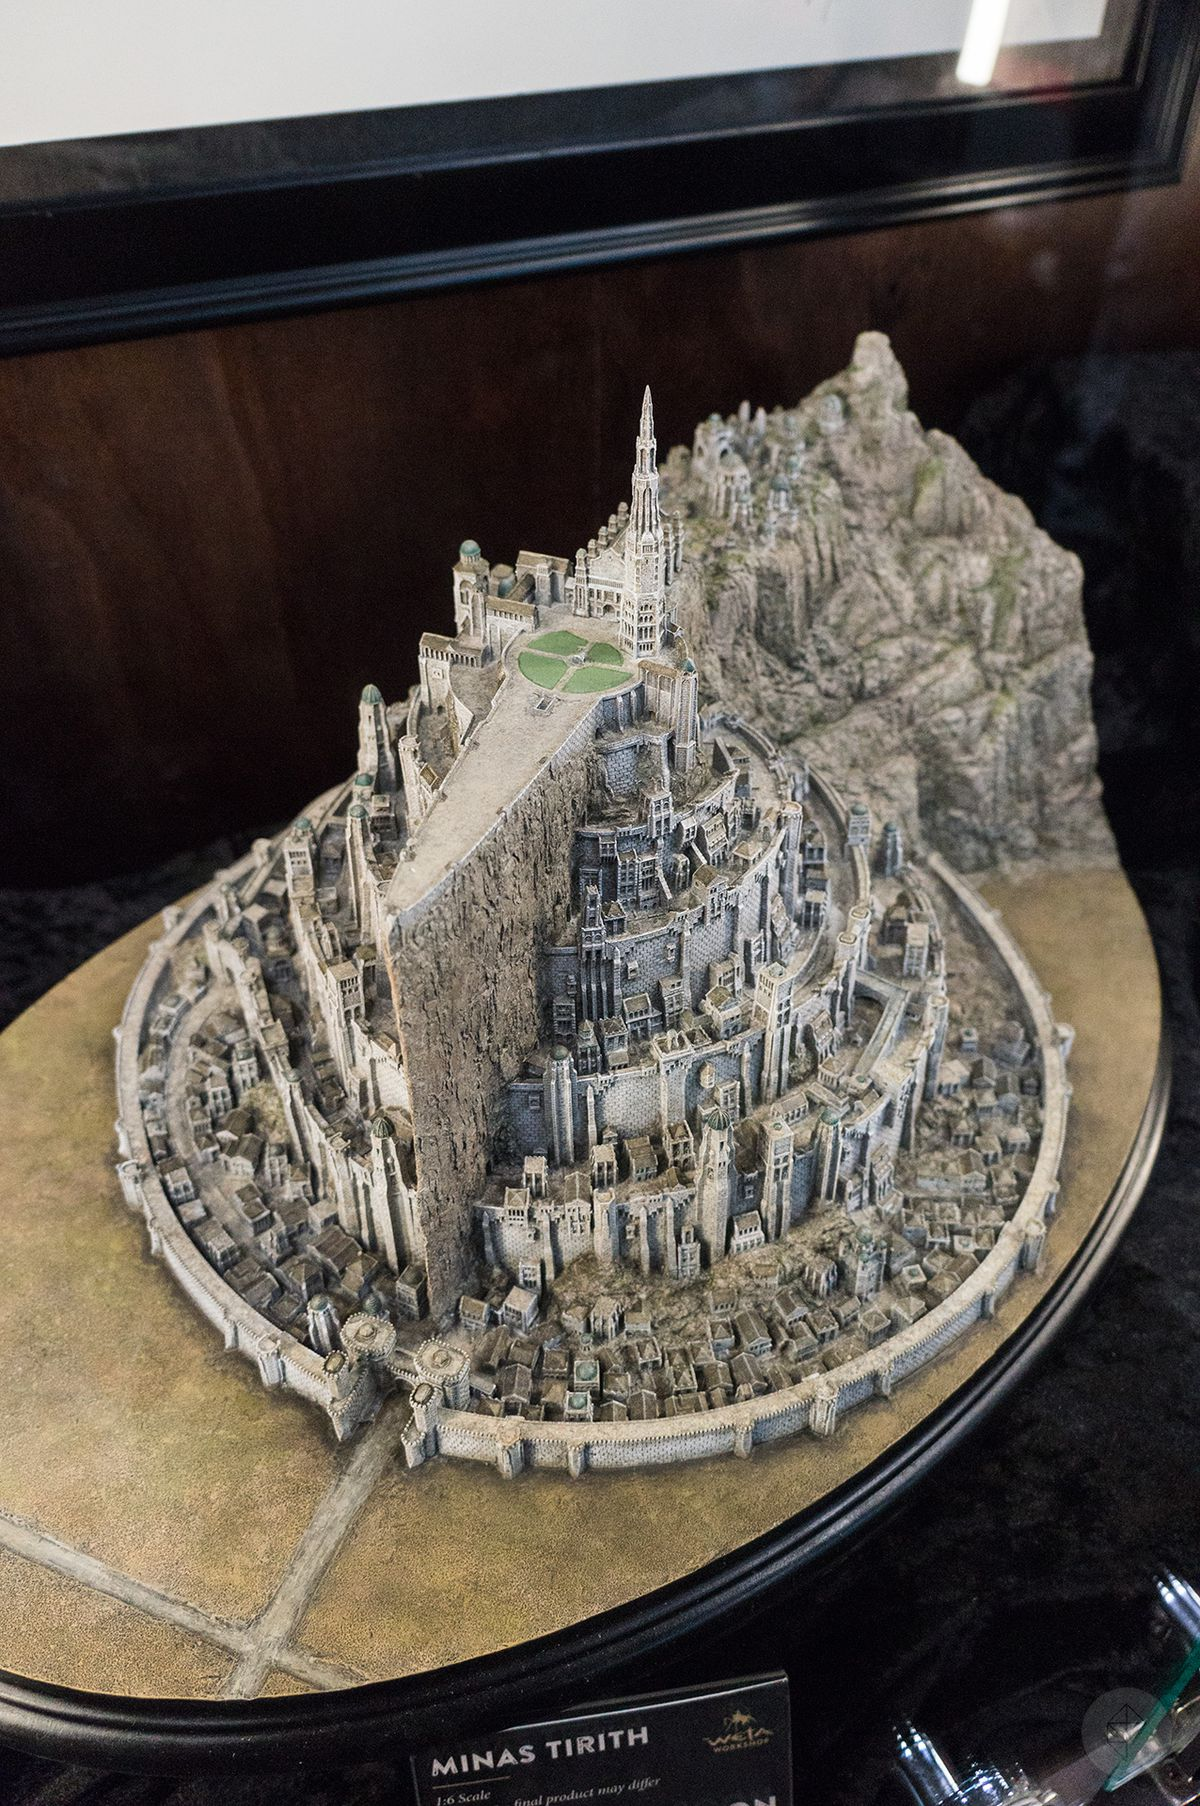 an overhead shot of a one-sixth scale model of Minas Tirith at the Weta Workshop booth at NYCC 2015